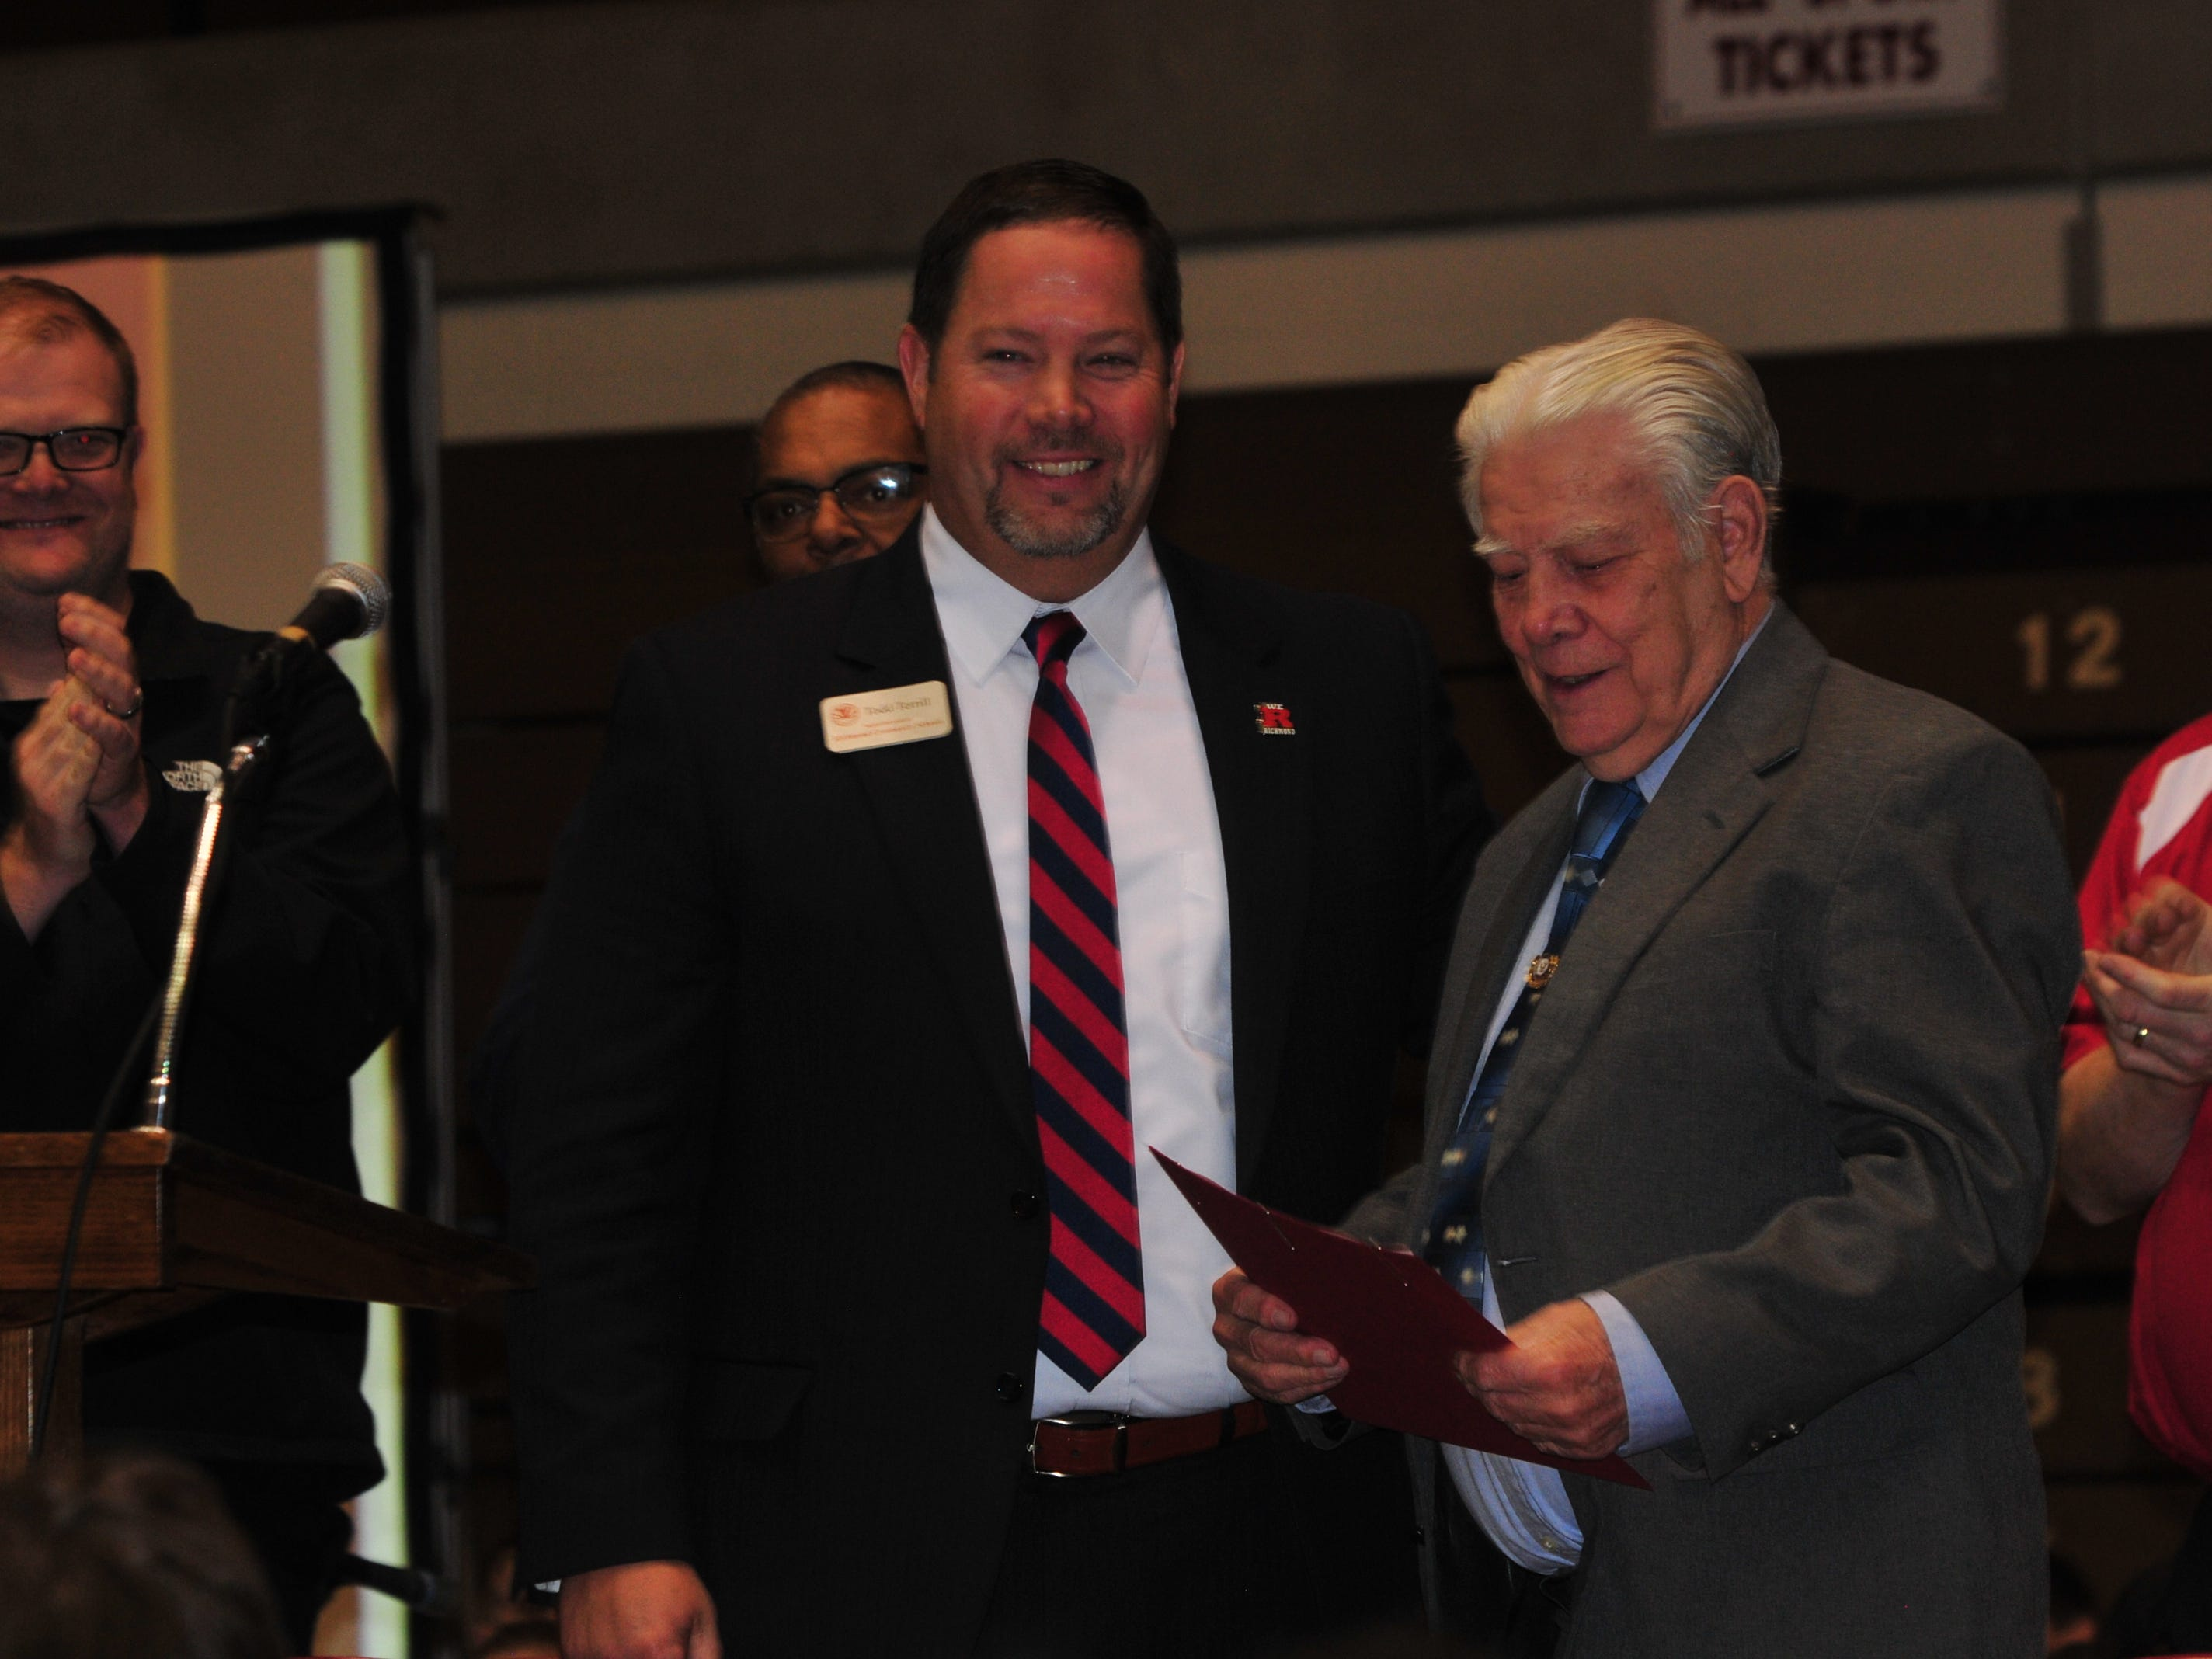 Bill Grimes looks at his Richmond High School diploma after receiving it from Richmond Community Schools Superintendent Todd Terrill during Friday's Veterans Day Program.